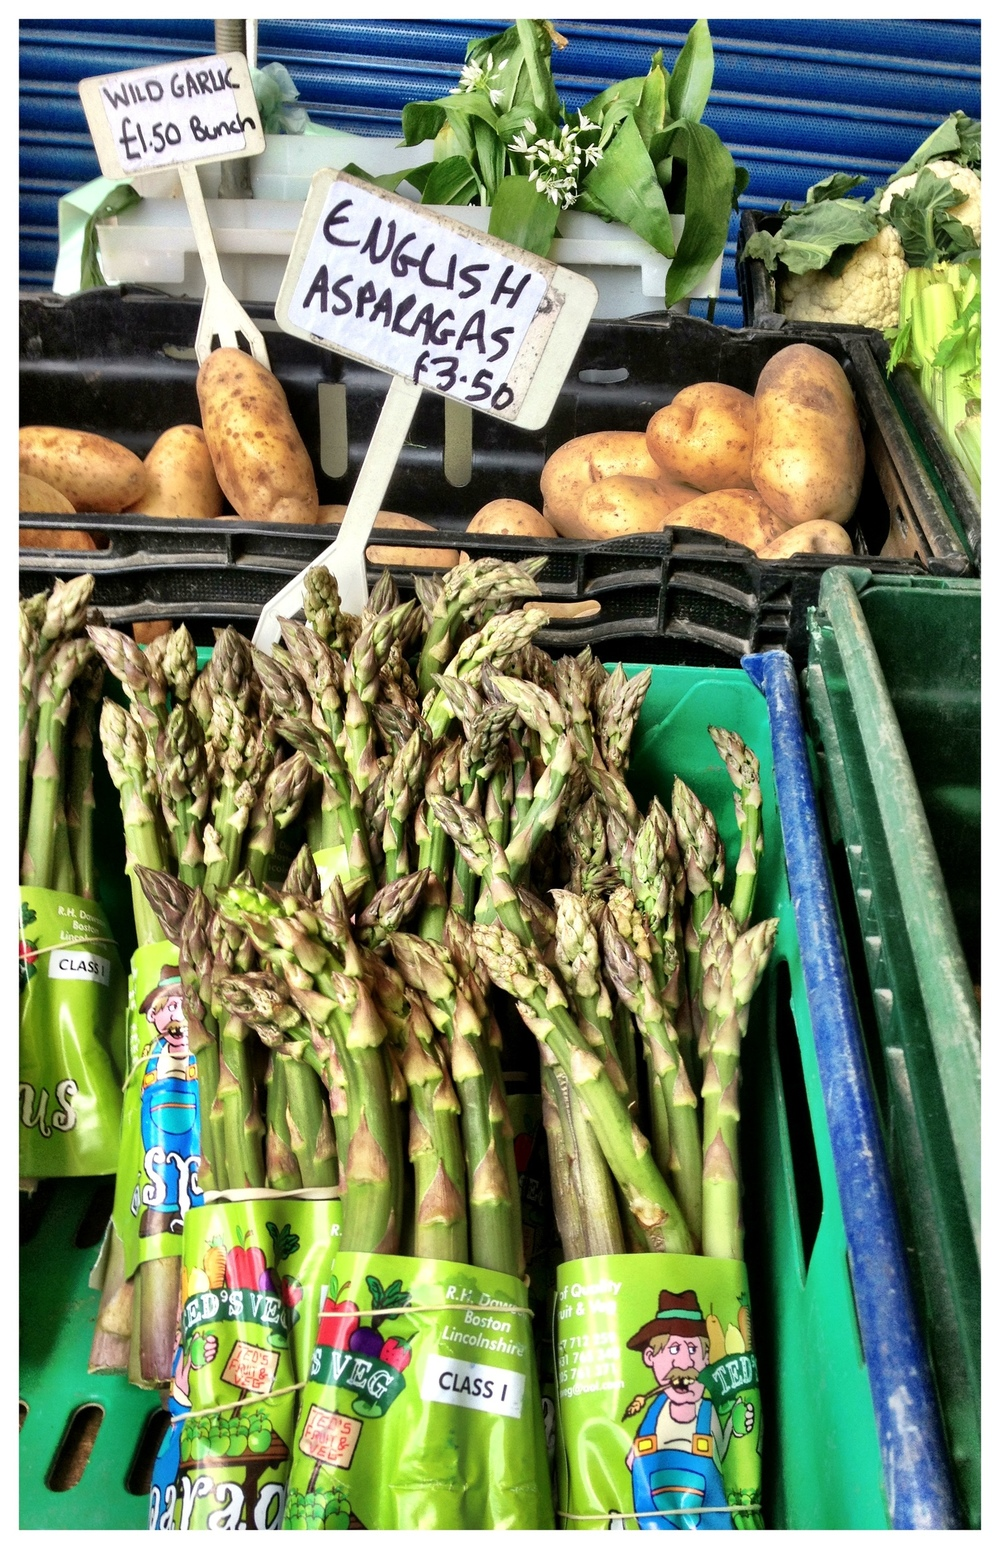 Asparagus sold at Brentford Market